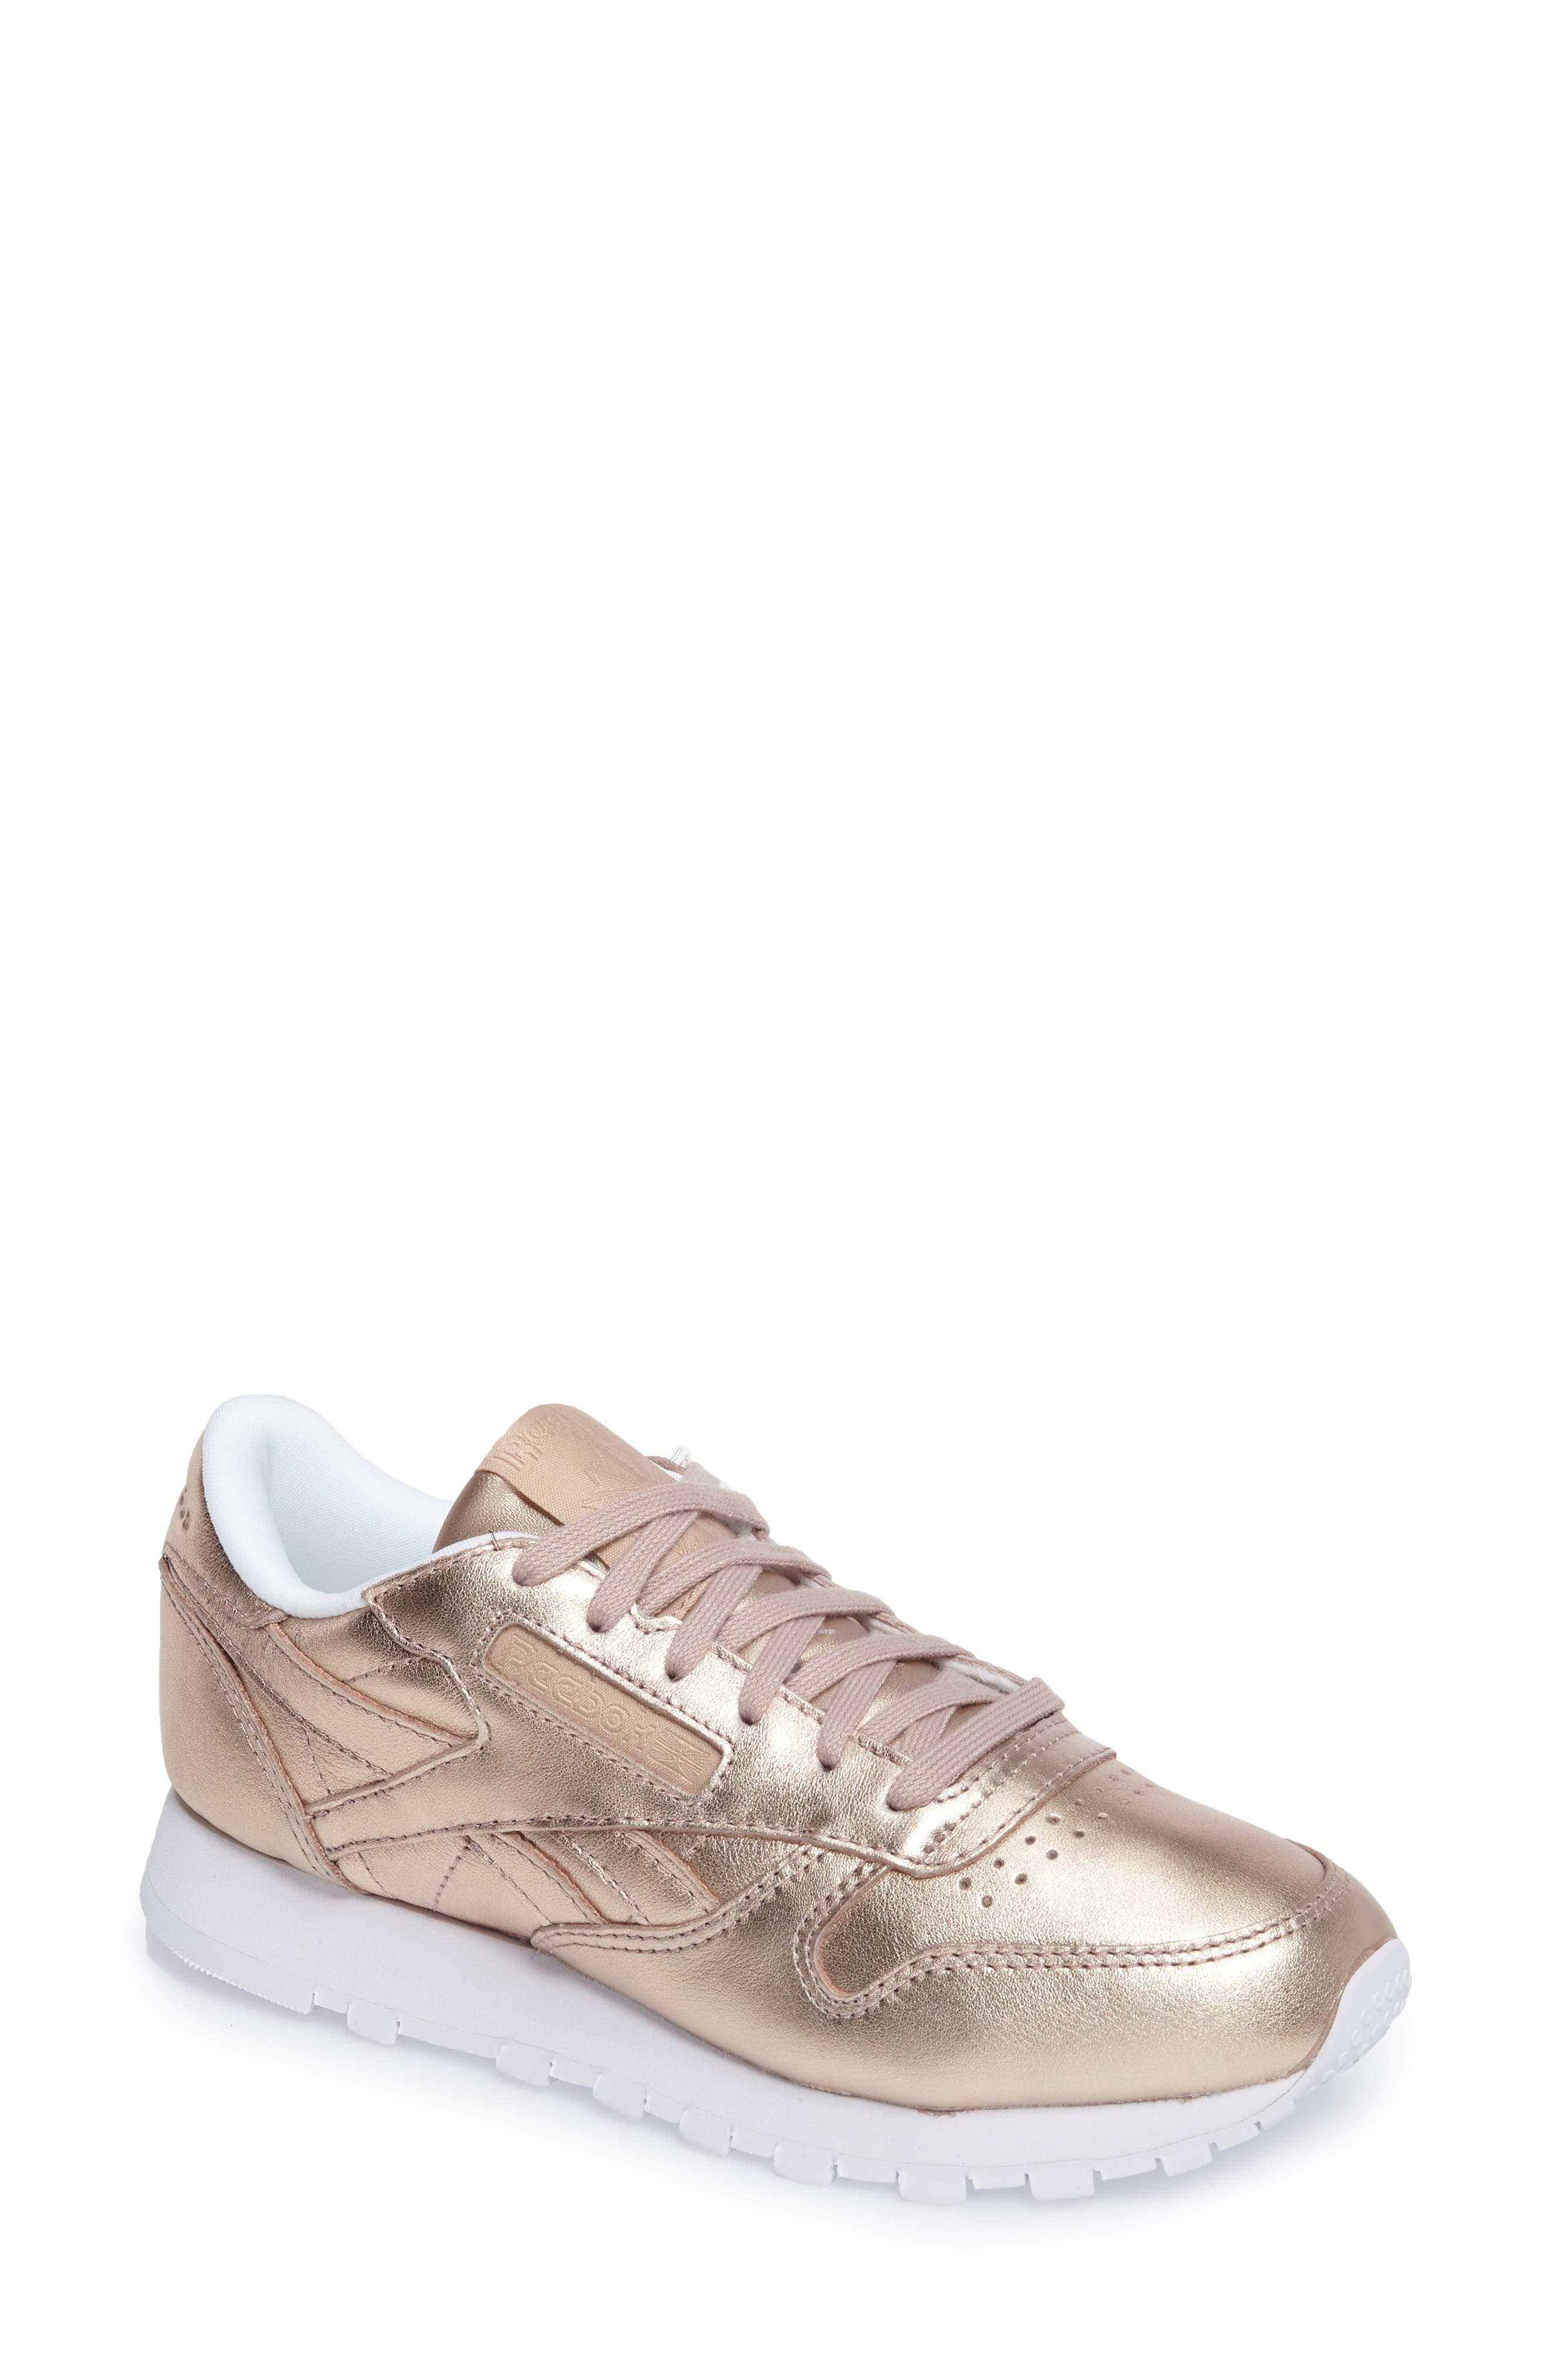 c4df50f808550b Reebok Women S Classic Leather Metallic Casual Sneakers From Finish Line In  Peach  White Pearl